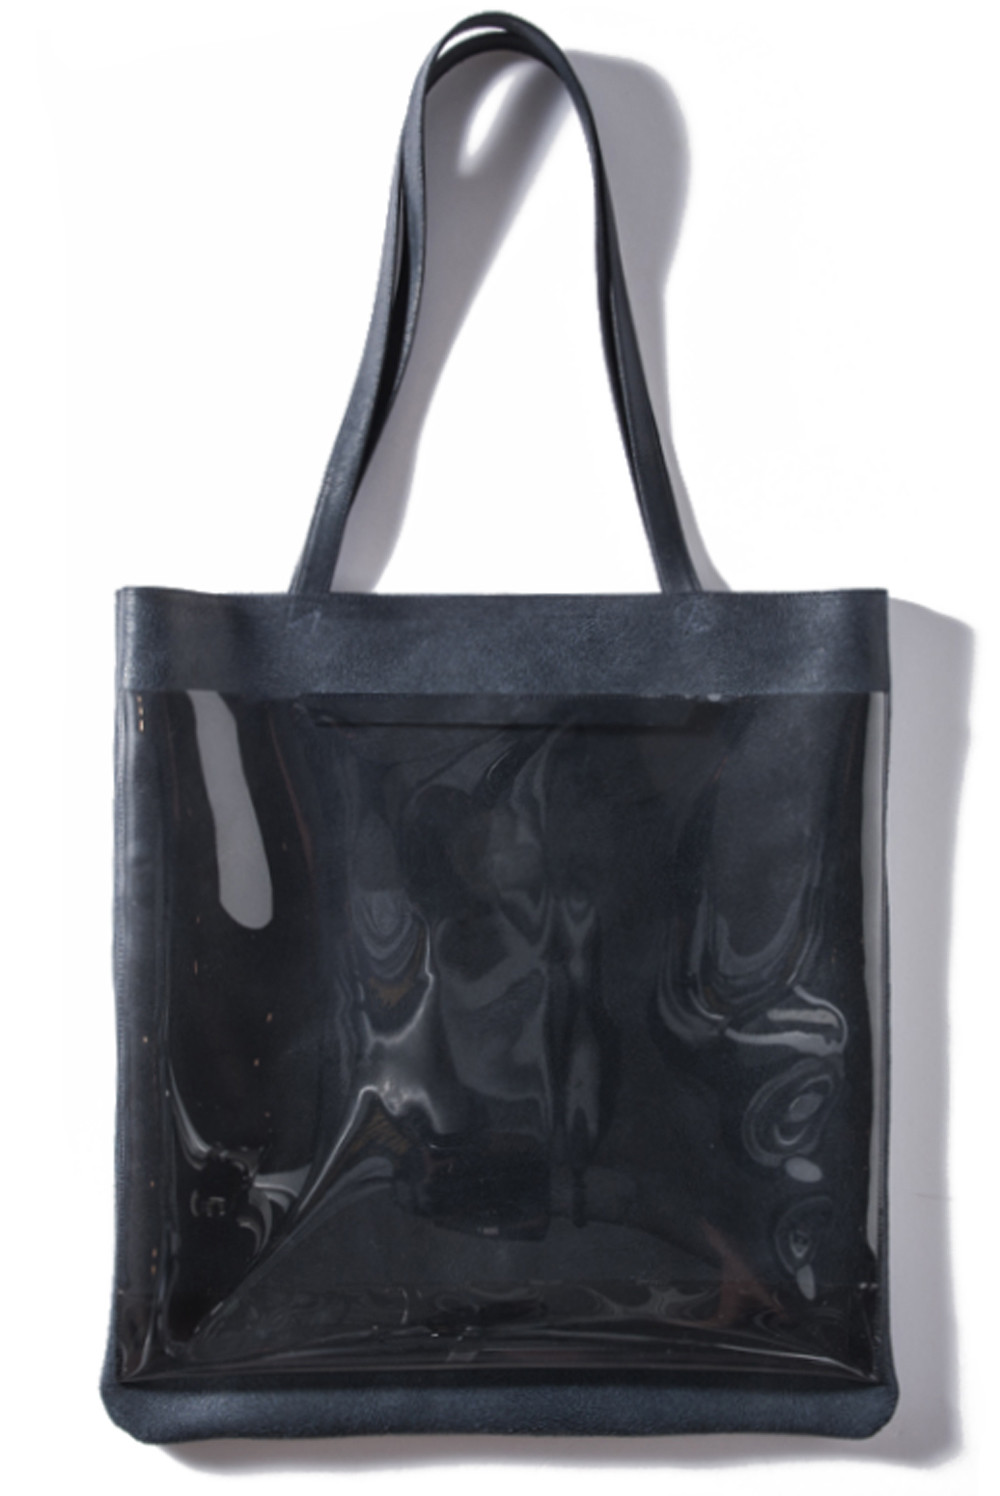 Tote Bag Vinyl ¥26000 (without tax) #NAVY